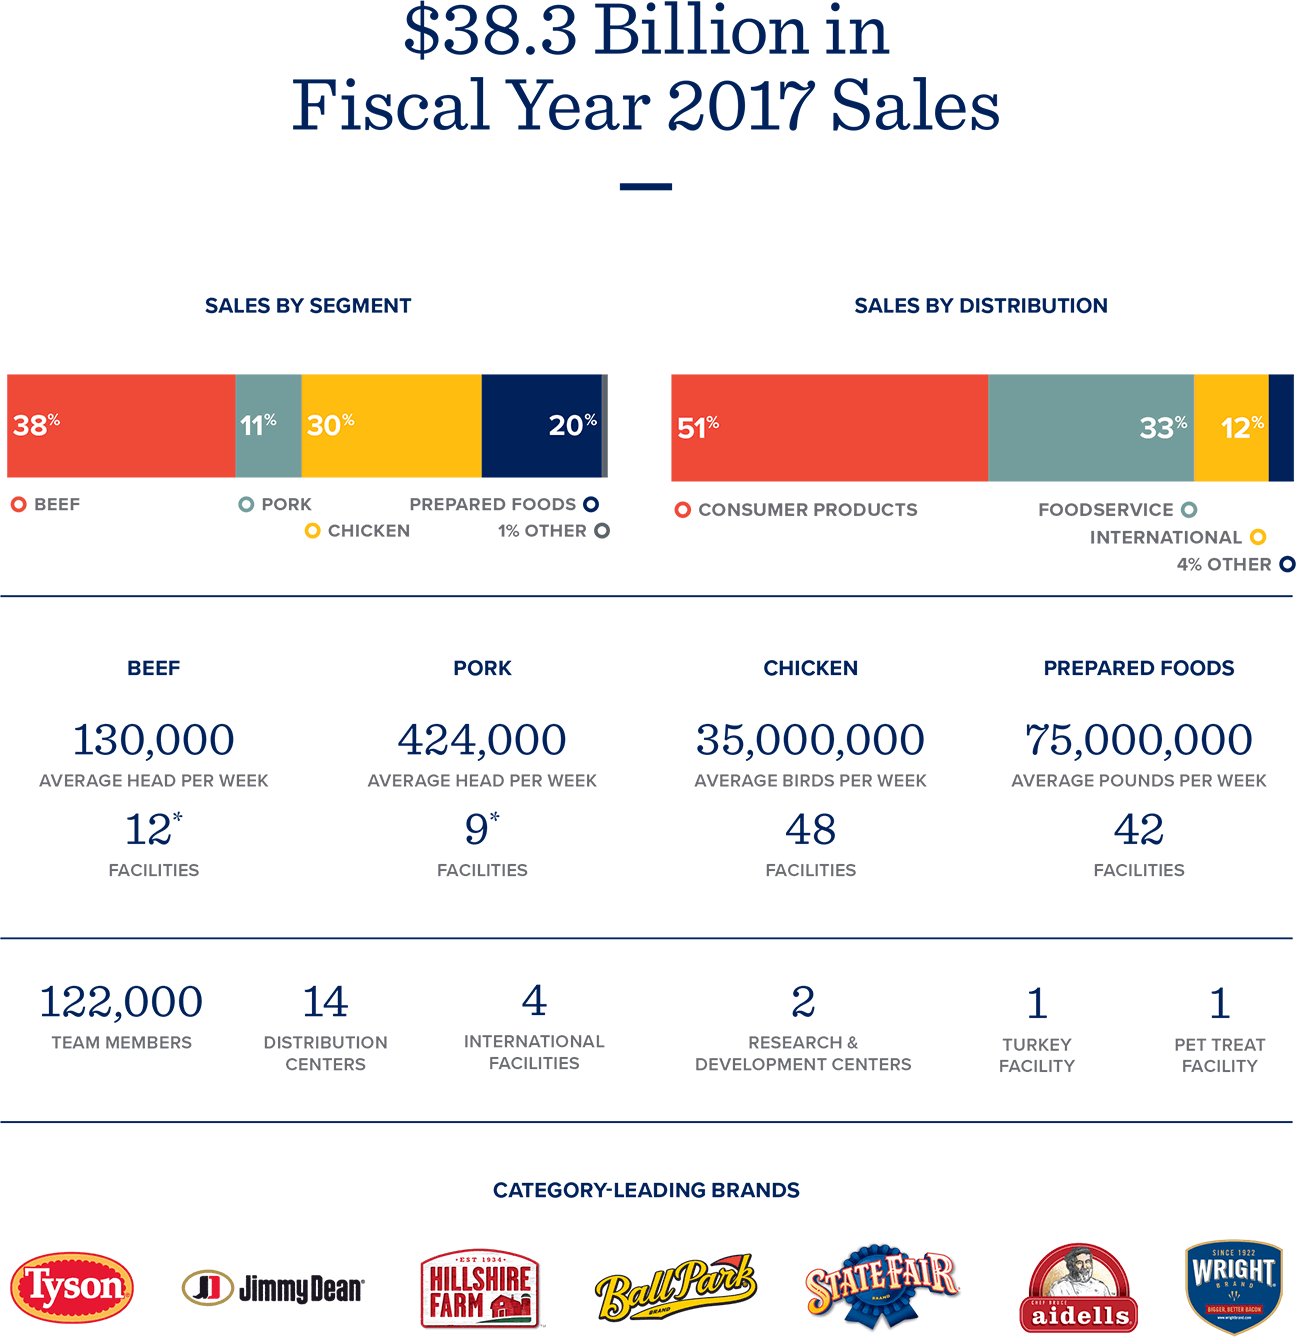 FY17 Fact Sheet